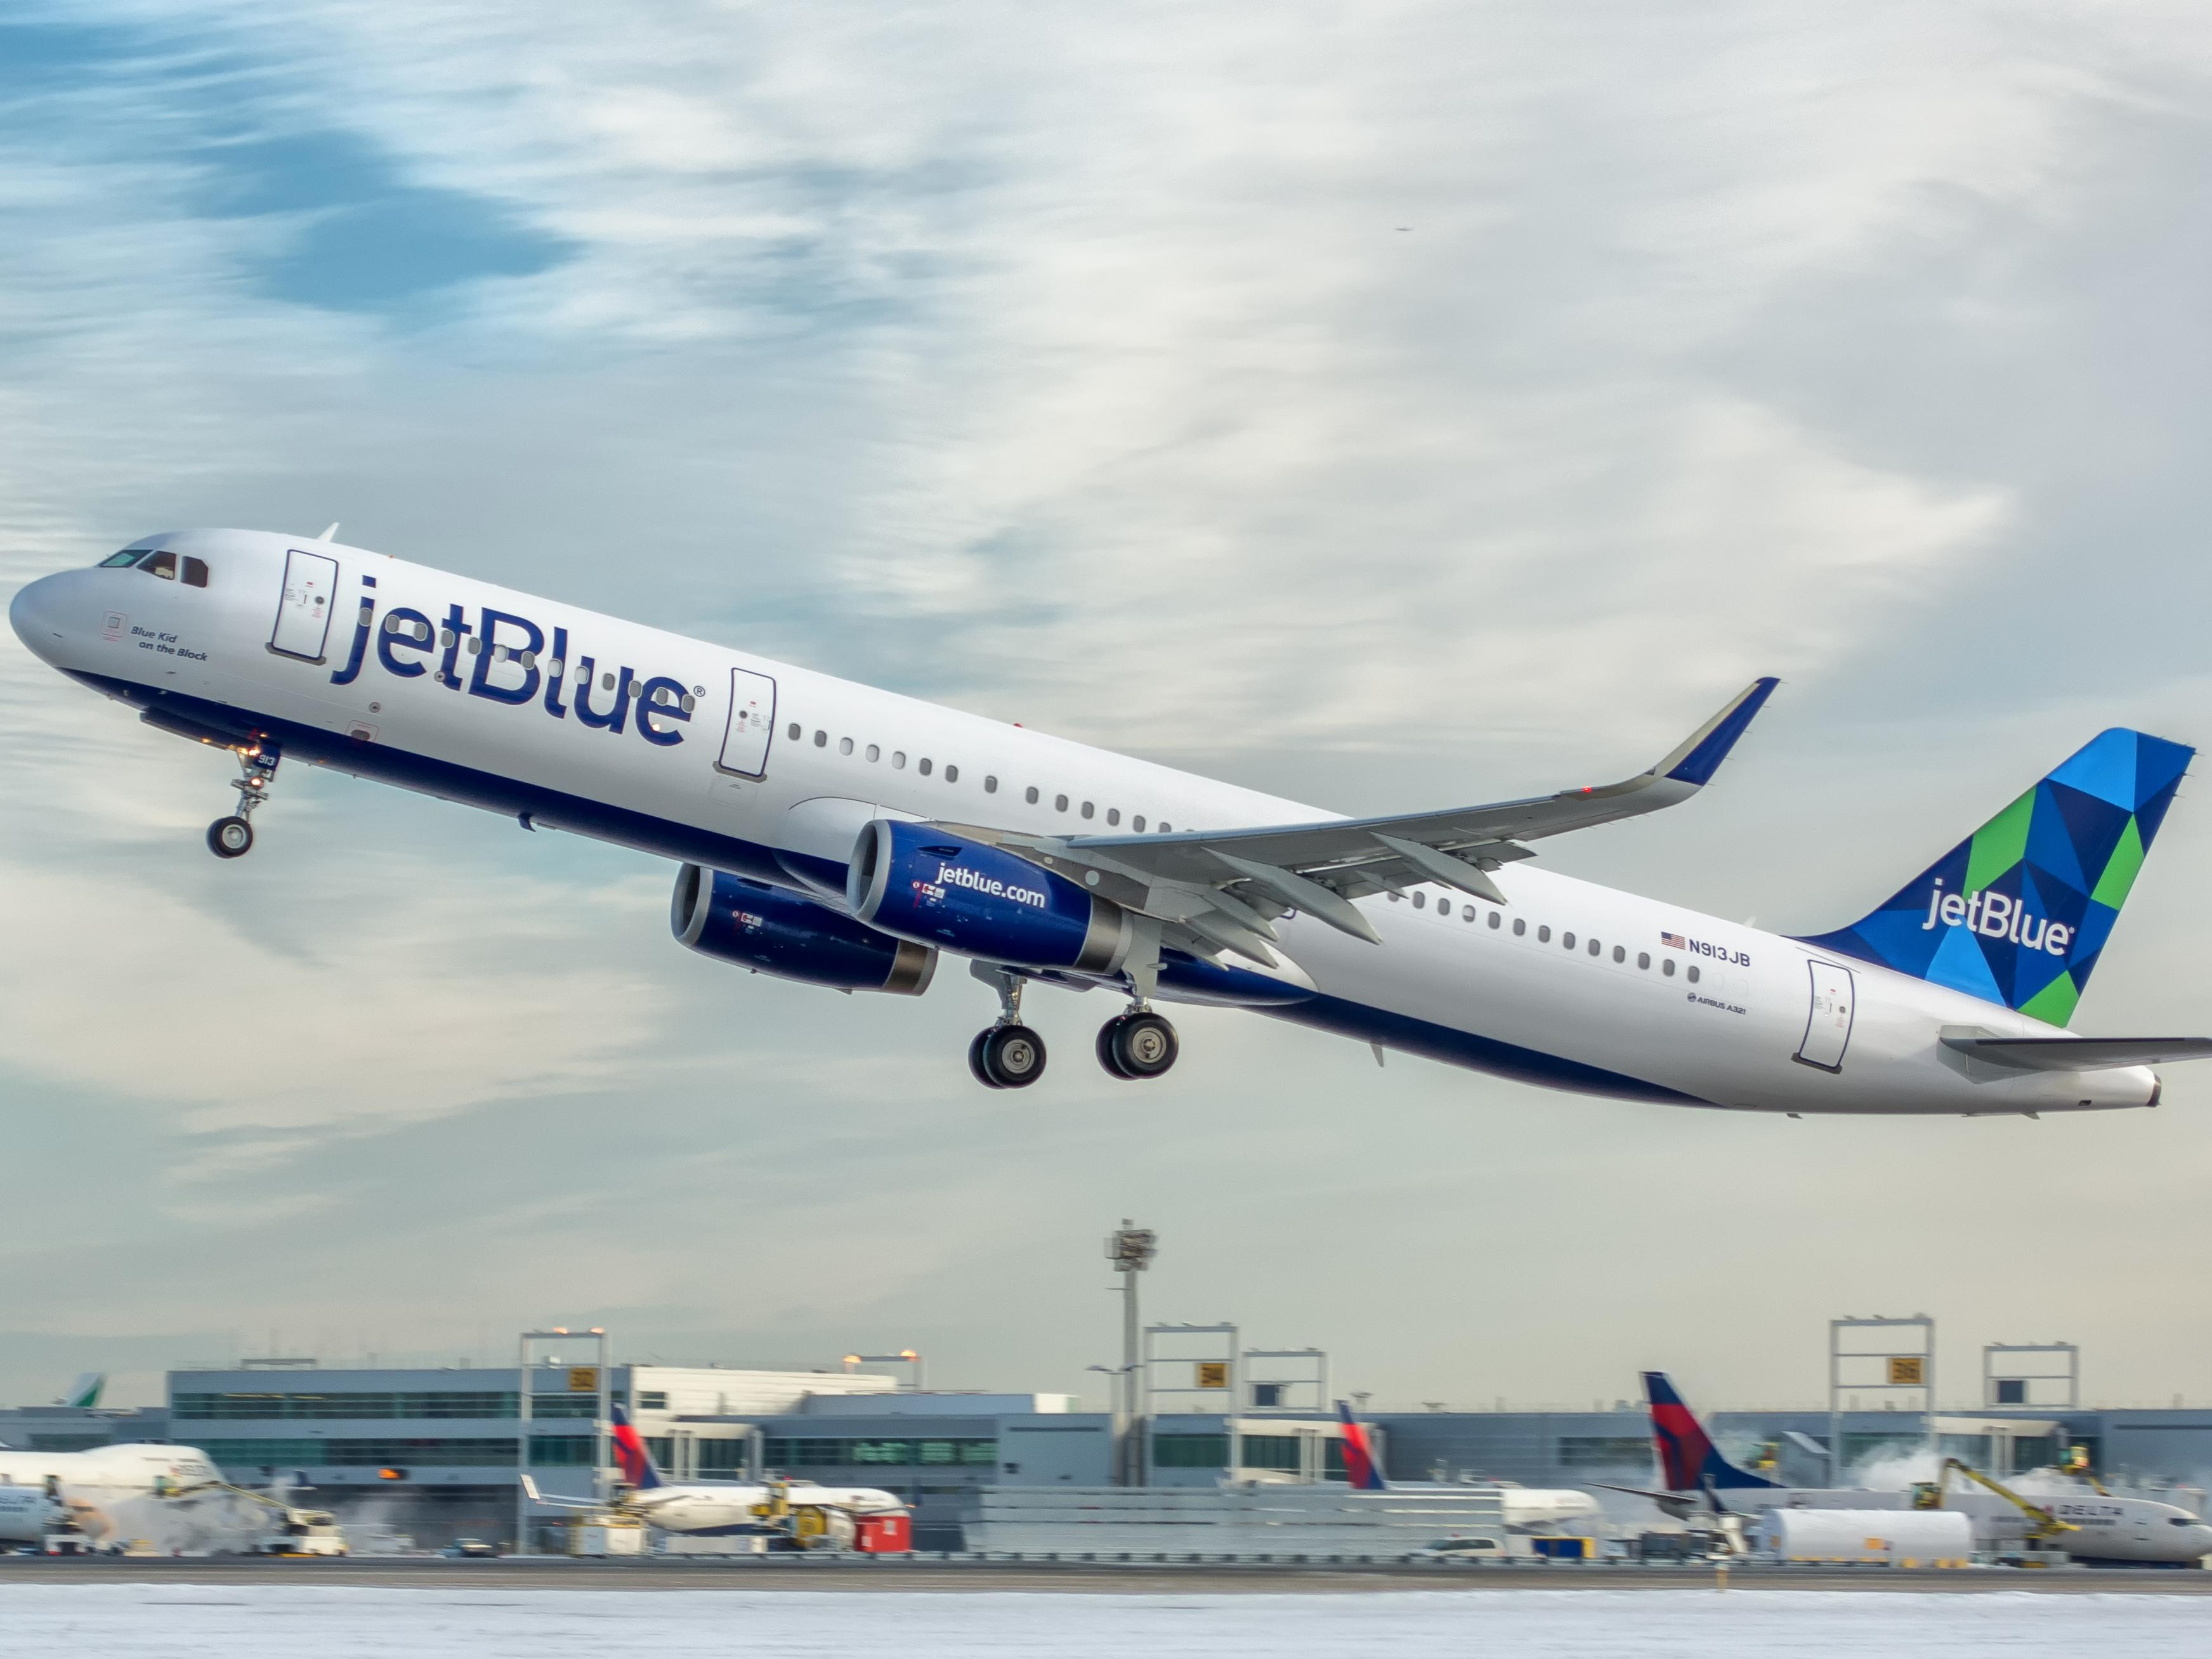 JetBlue wants to invest in startups